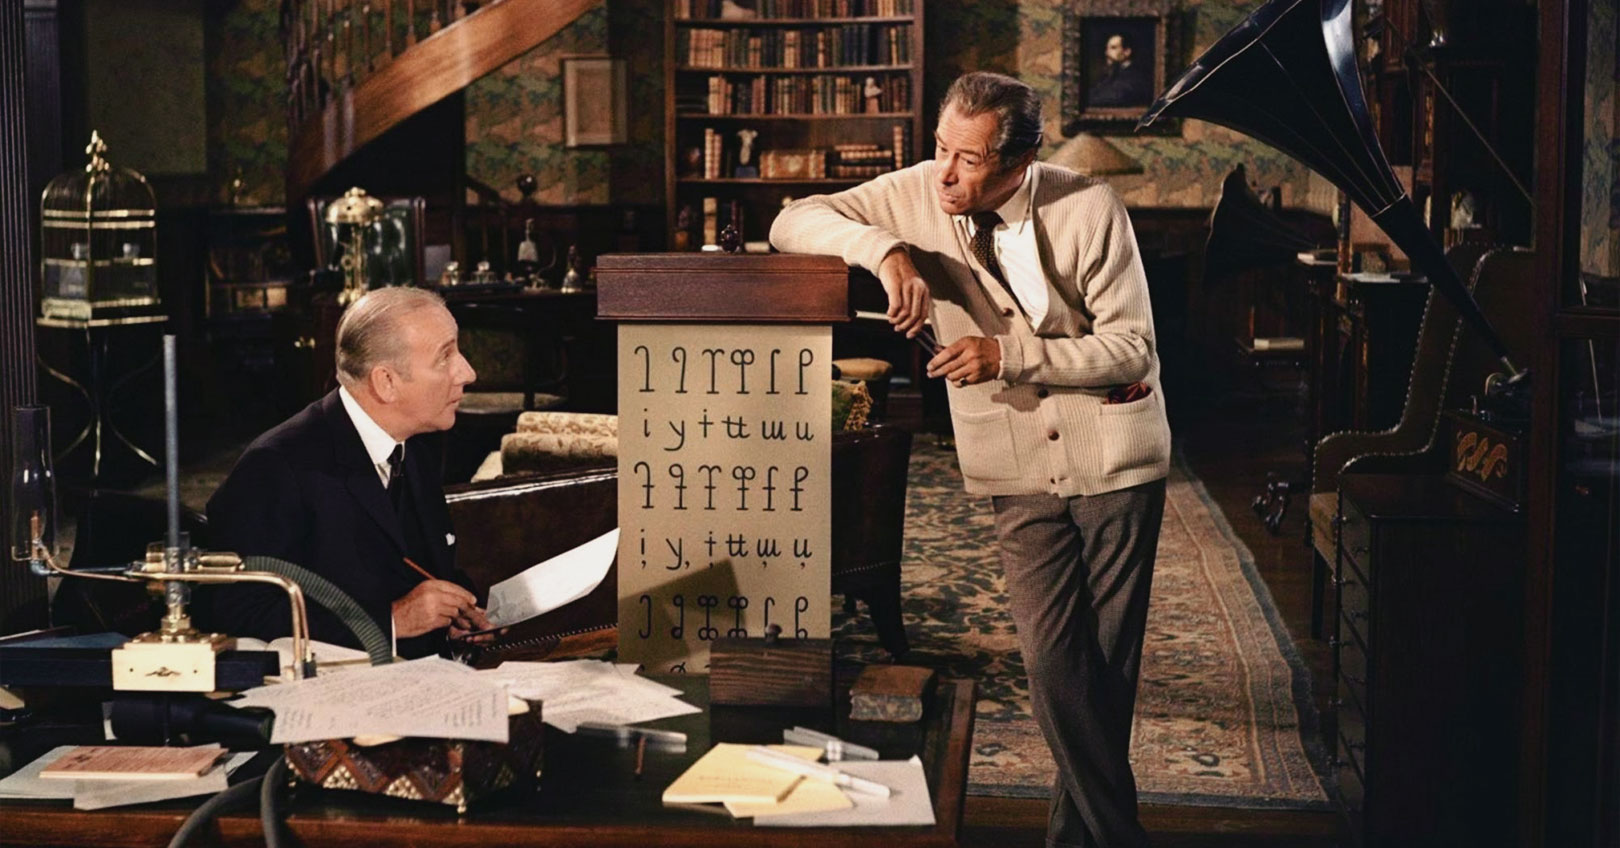 My Fair Lady - Wilfred Hyde-White and Rex Harrison